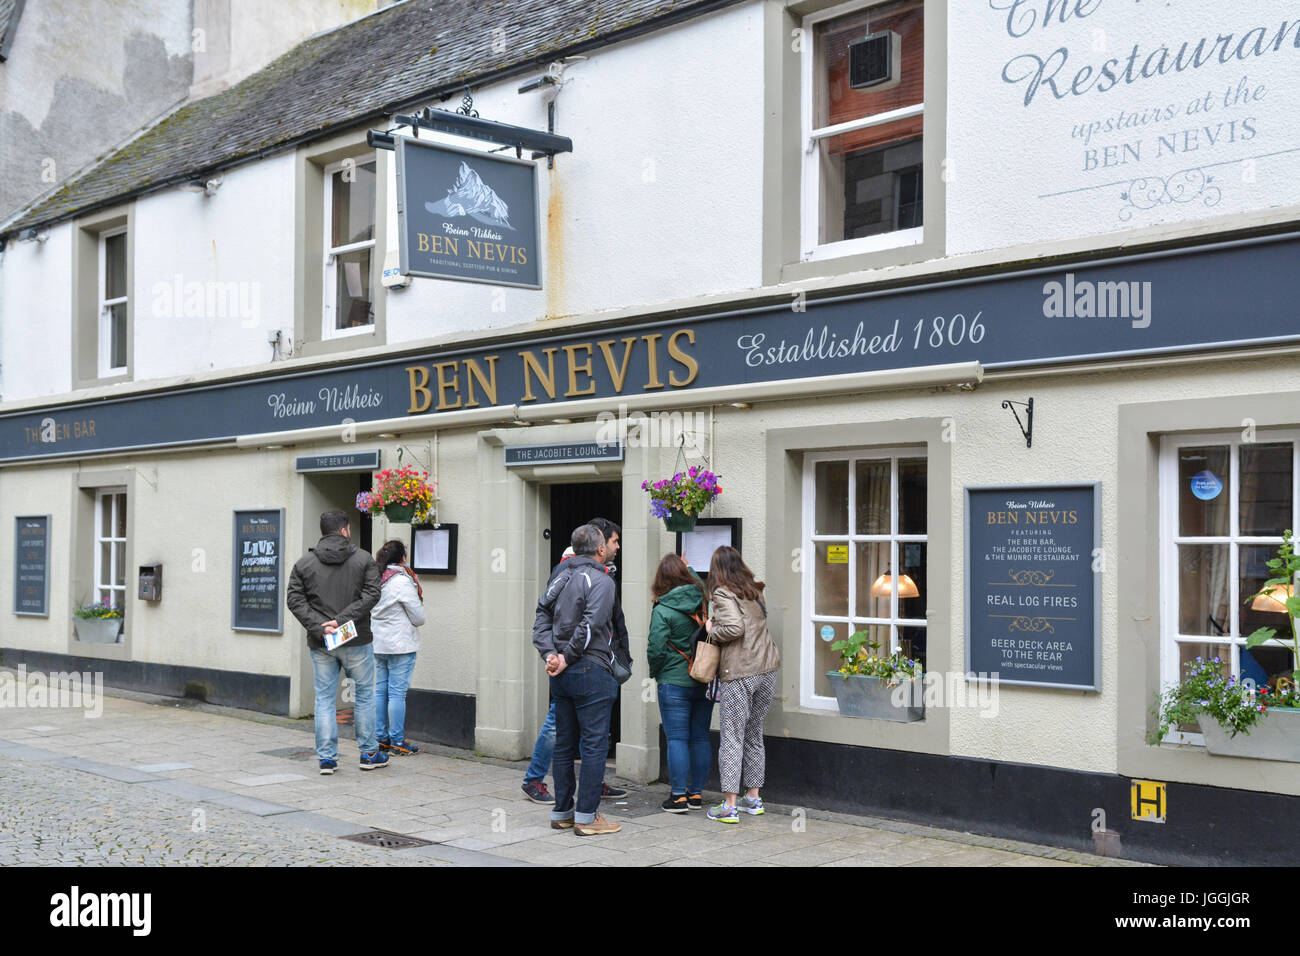 Scottish pub and restaurant - The Ben Nevis Bar part of the Do Drop Inns chain - Fort William, highland, Scotland, - Stock Image